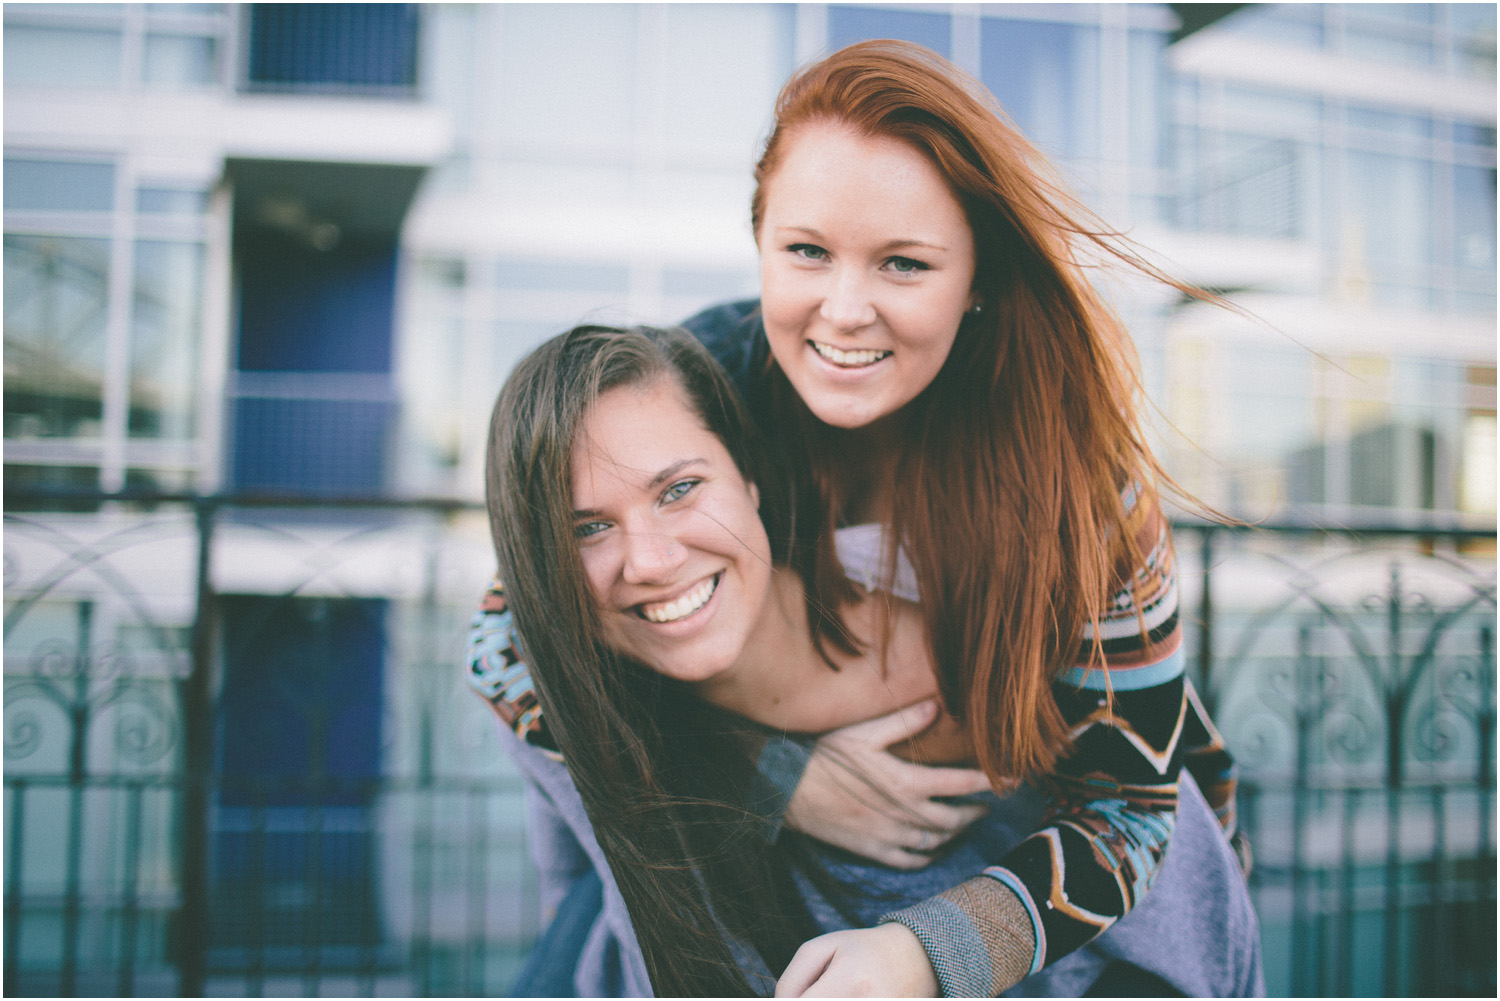 Such cute sisters! - Awesome Senior Portraits in Cleveland